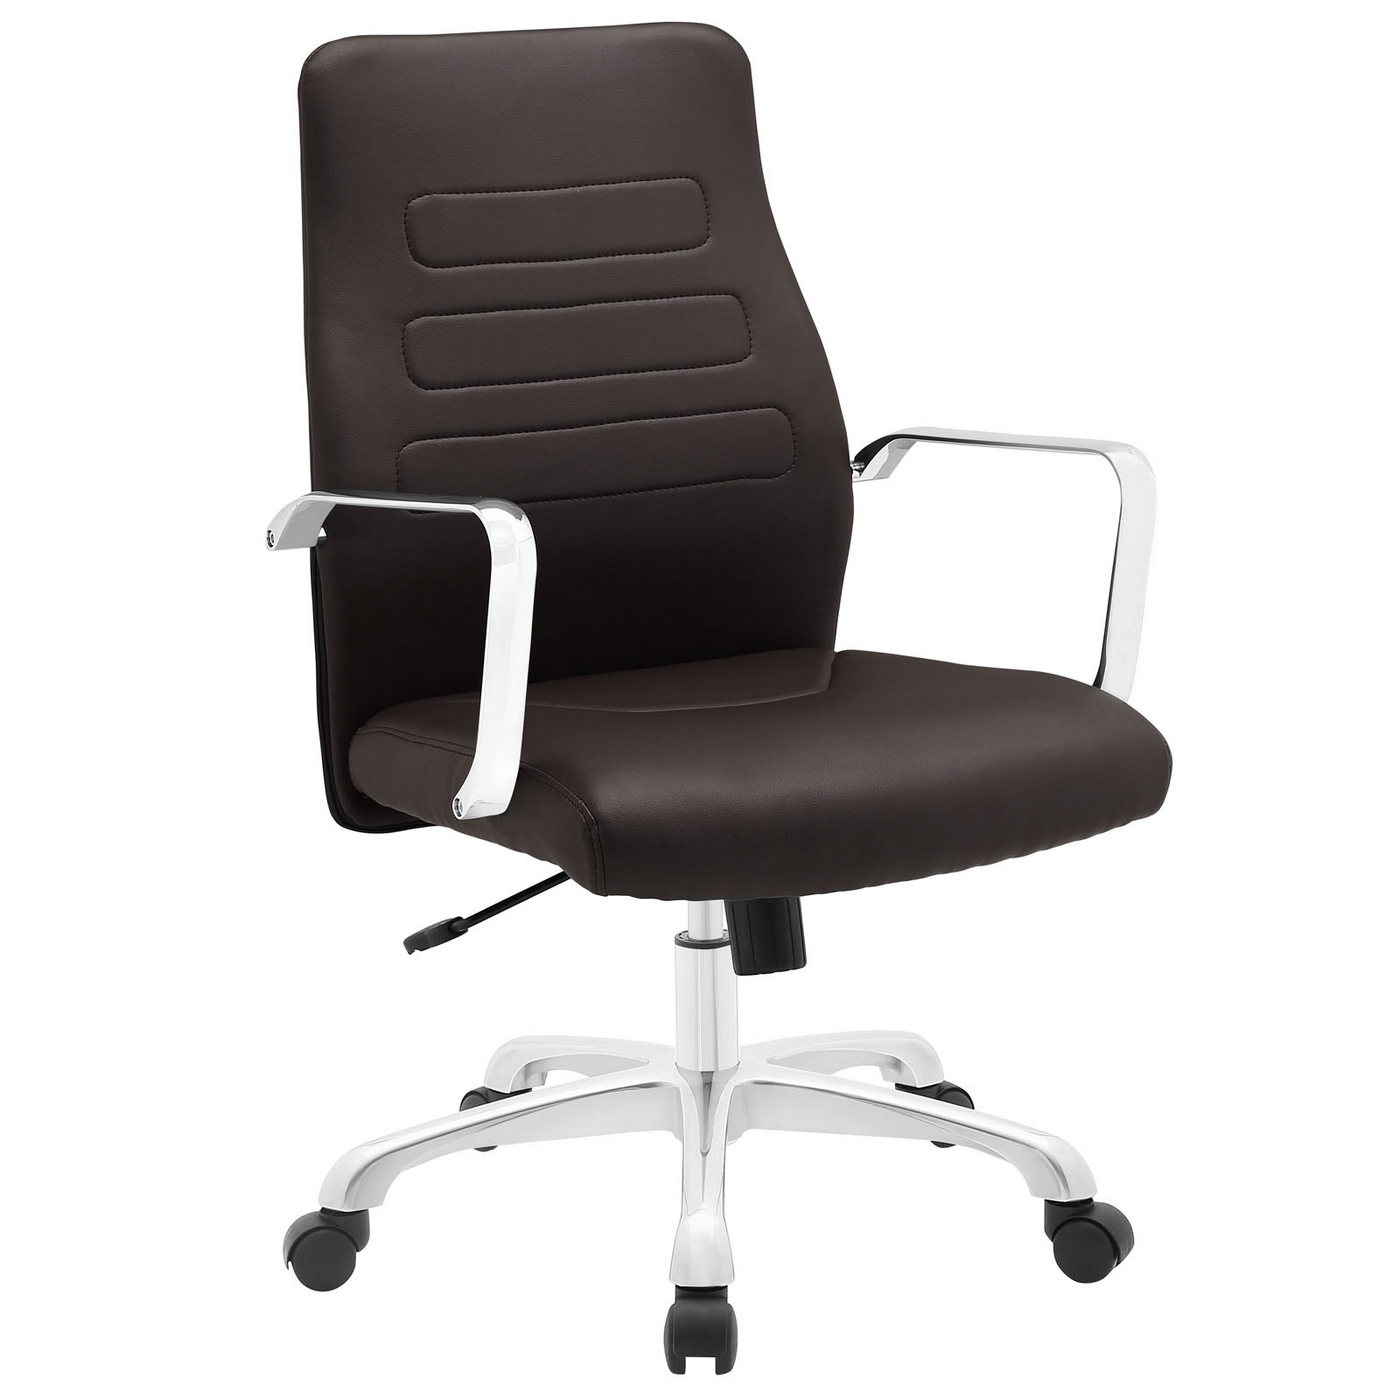 modern aluminum chair microfiber round swivel depict upholstered mid back office with